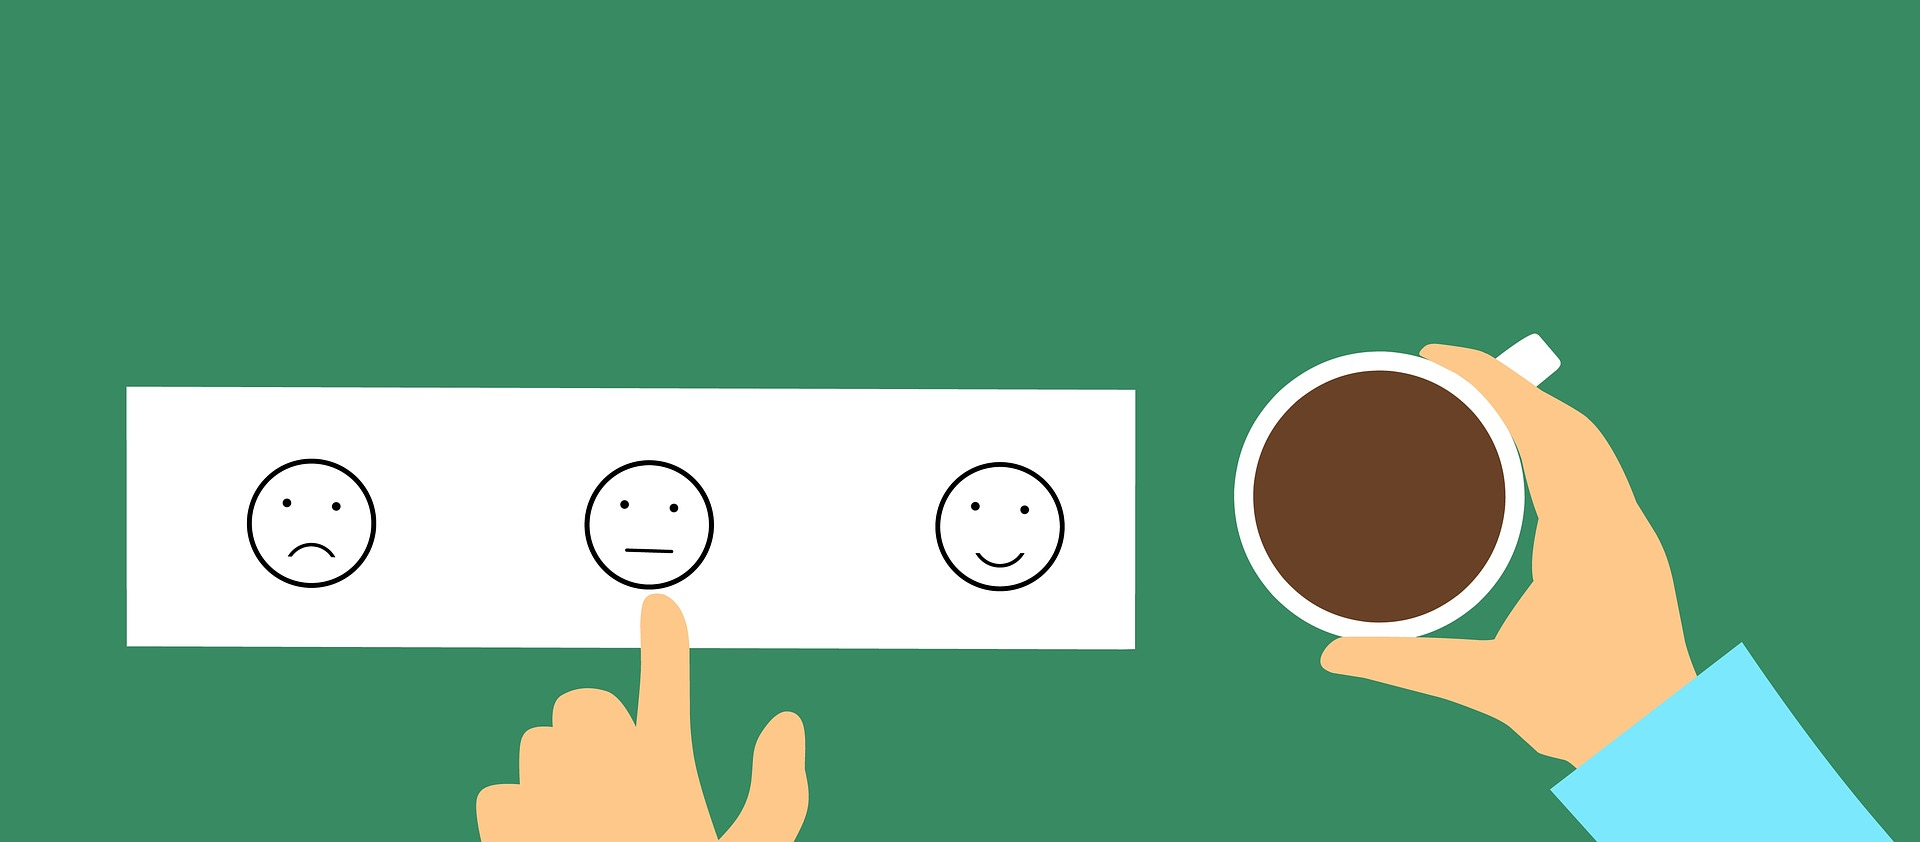 hand with coffee mug pointing at feedback satisfaction faces